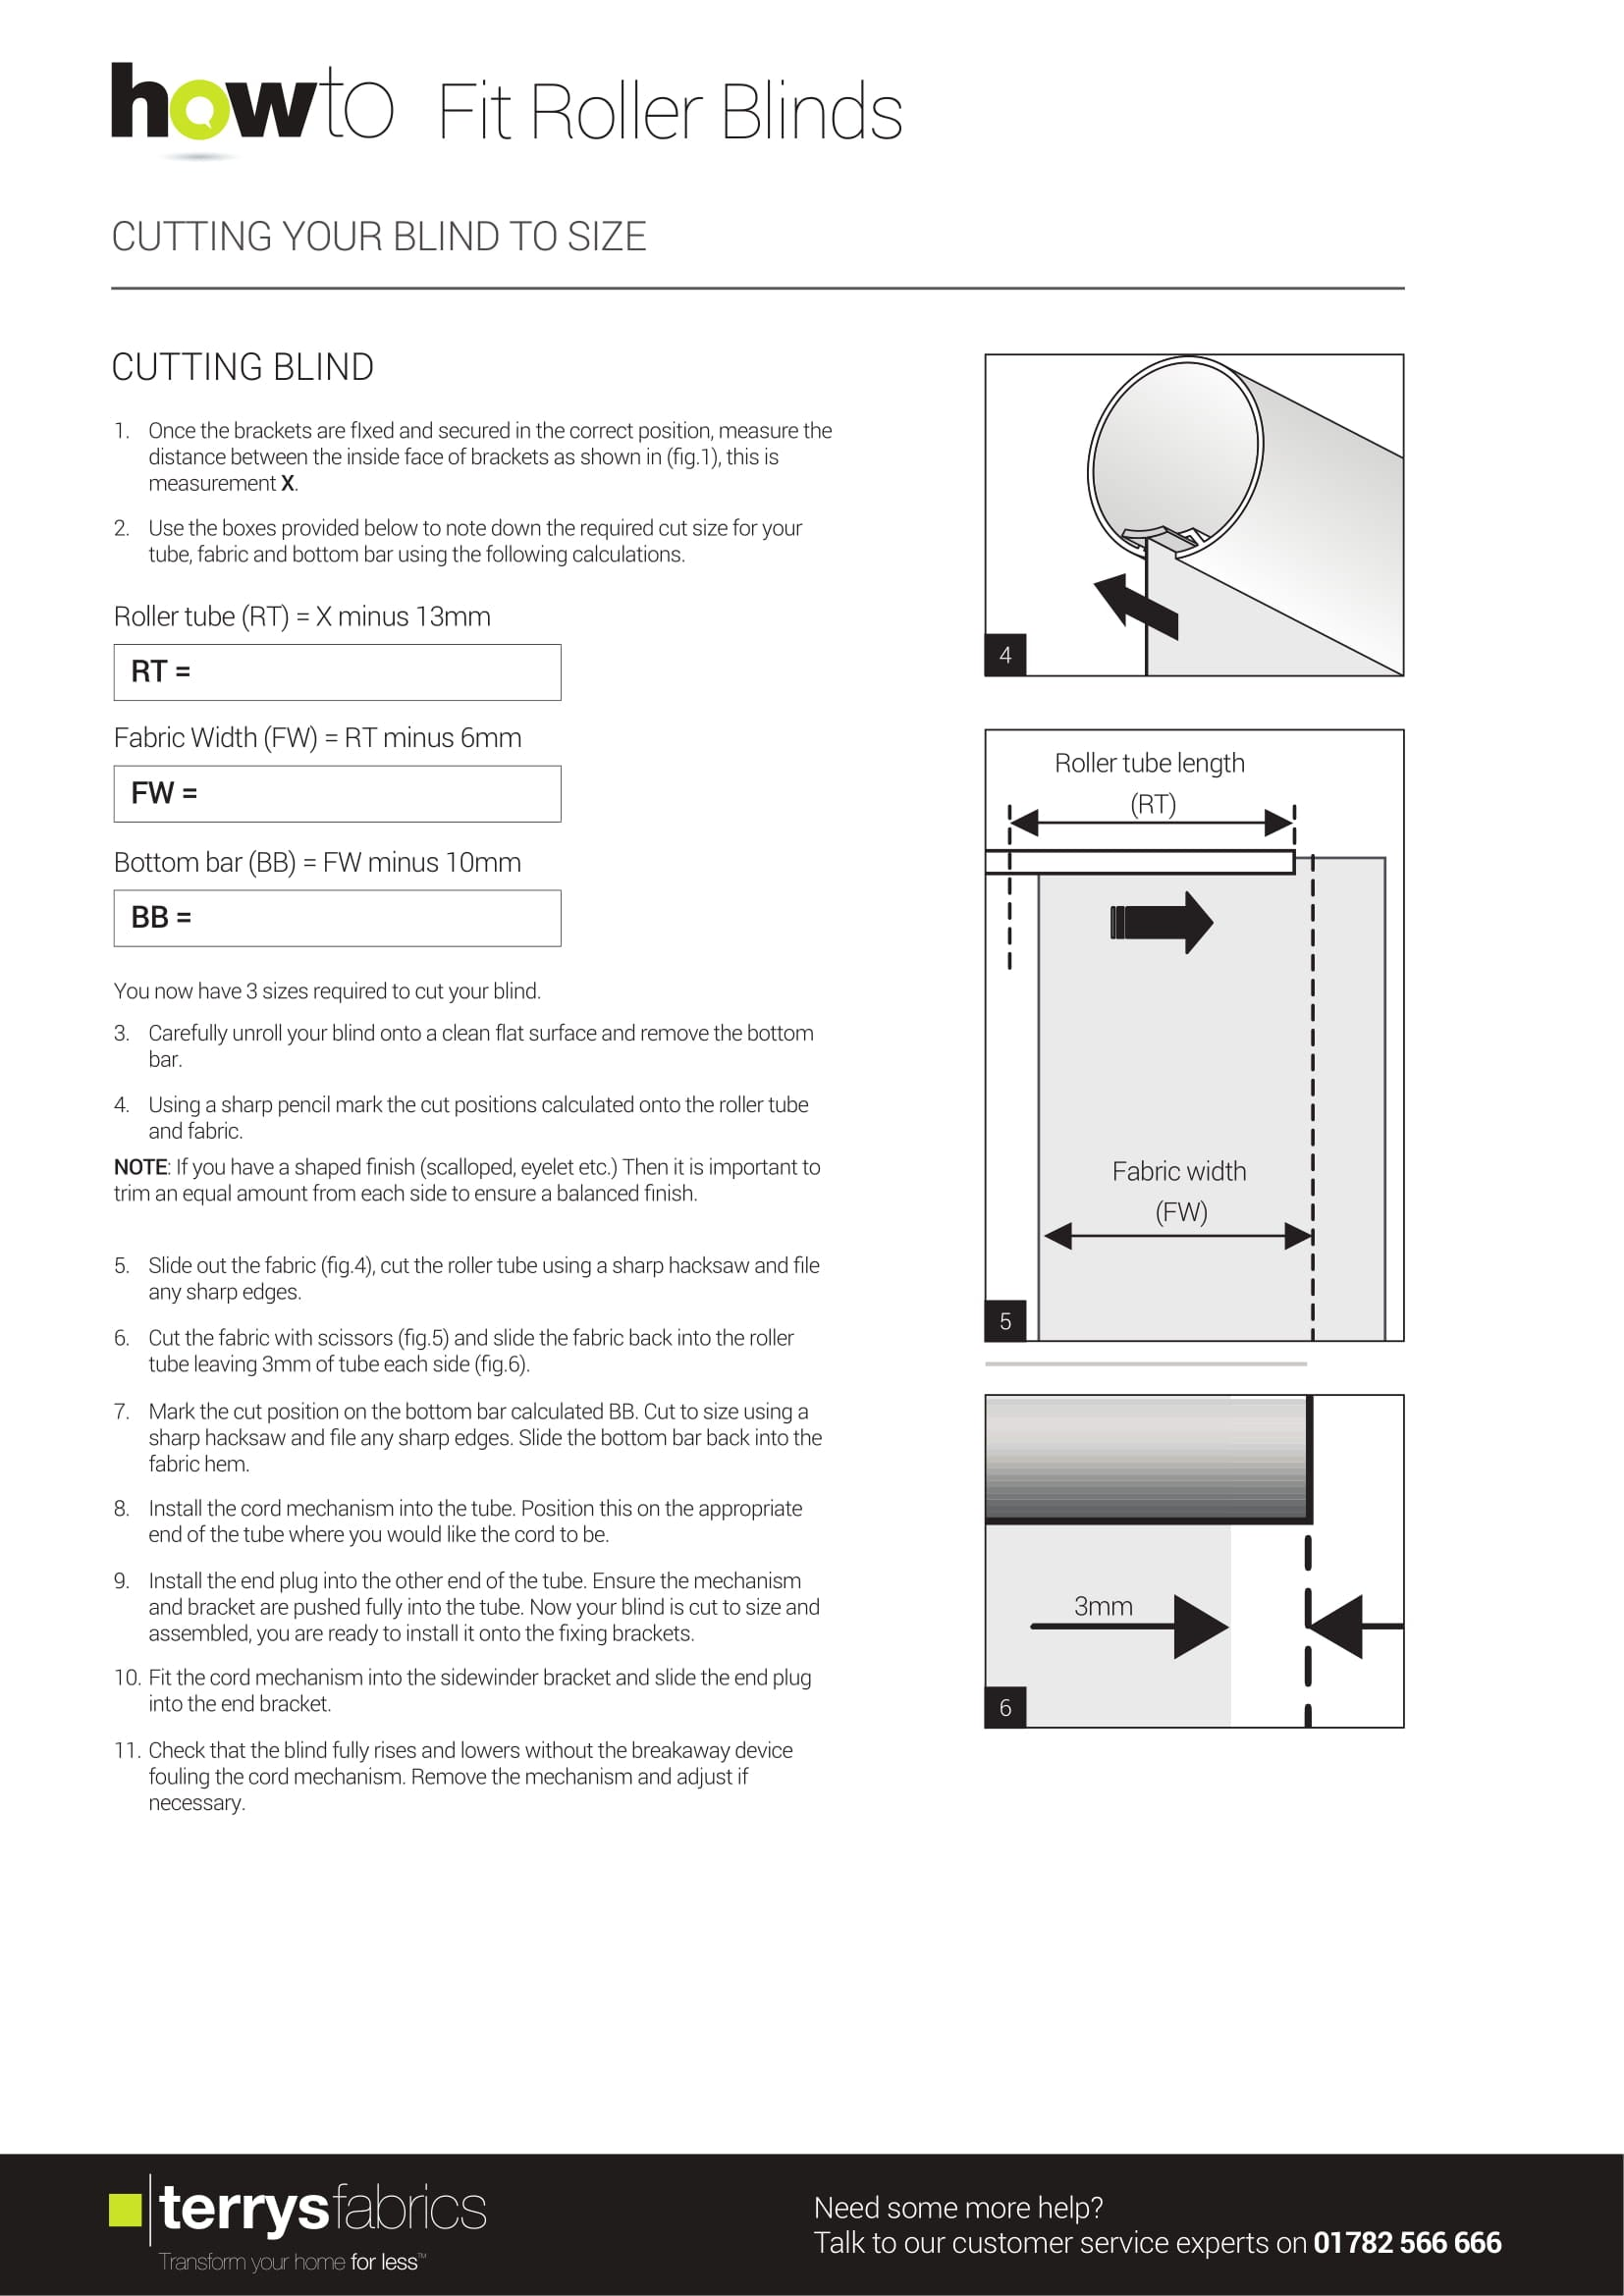 Sunflex Roller Blind Fitting Instructions Two